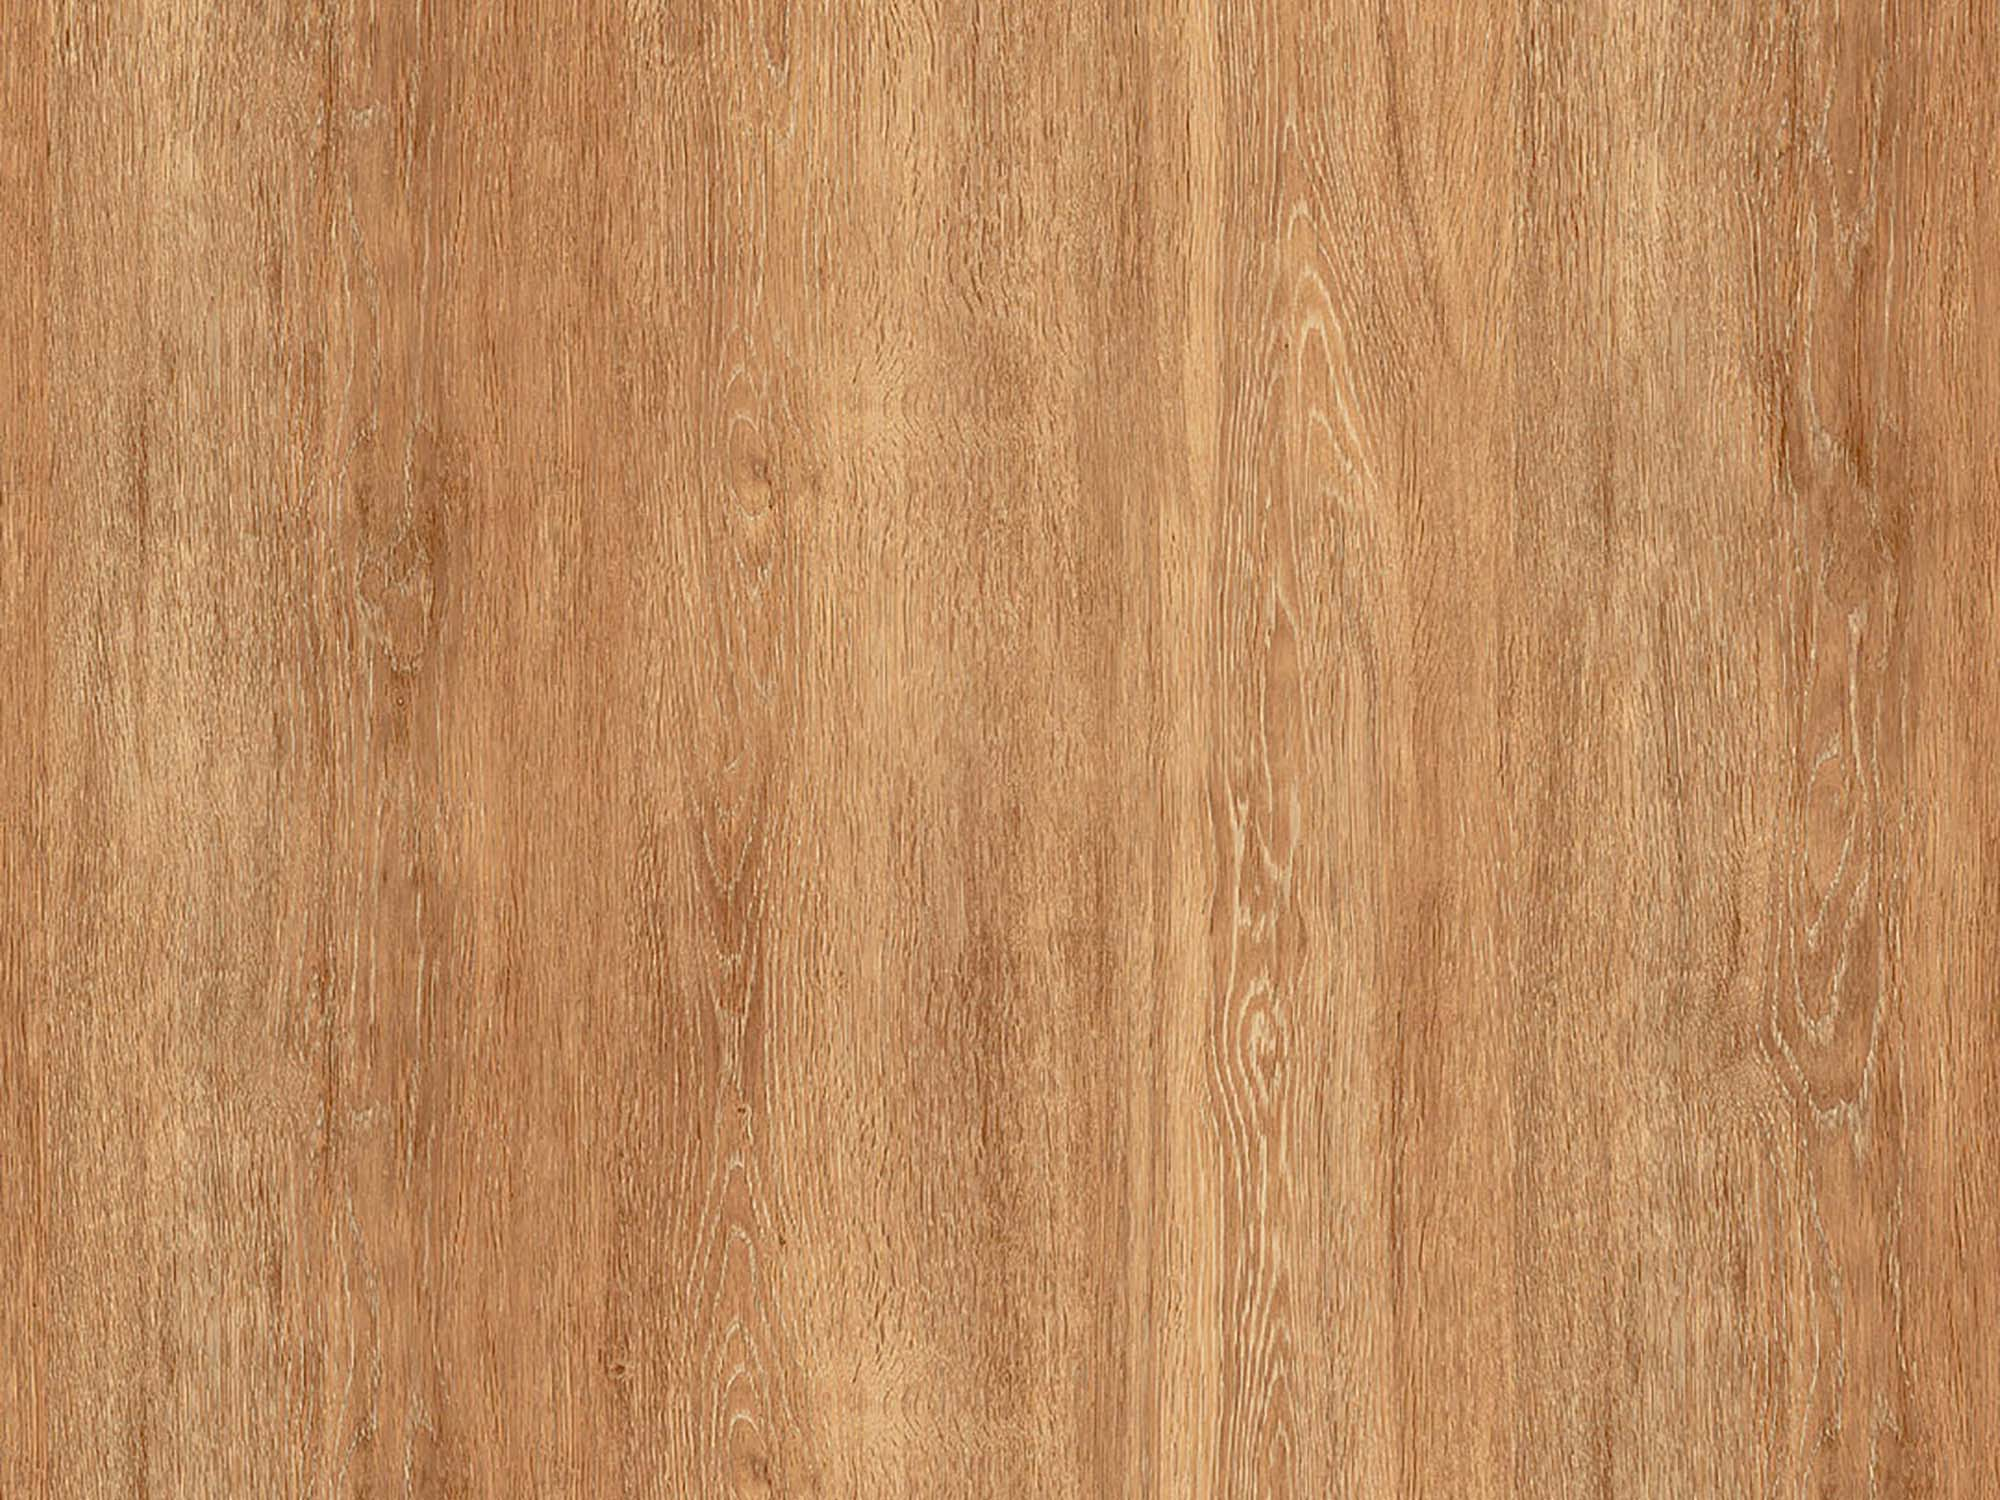 Seamless Wood Texture 3